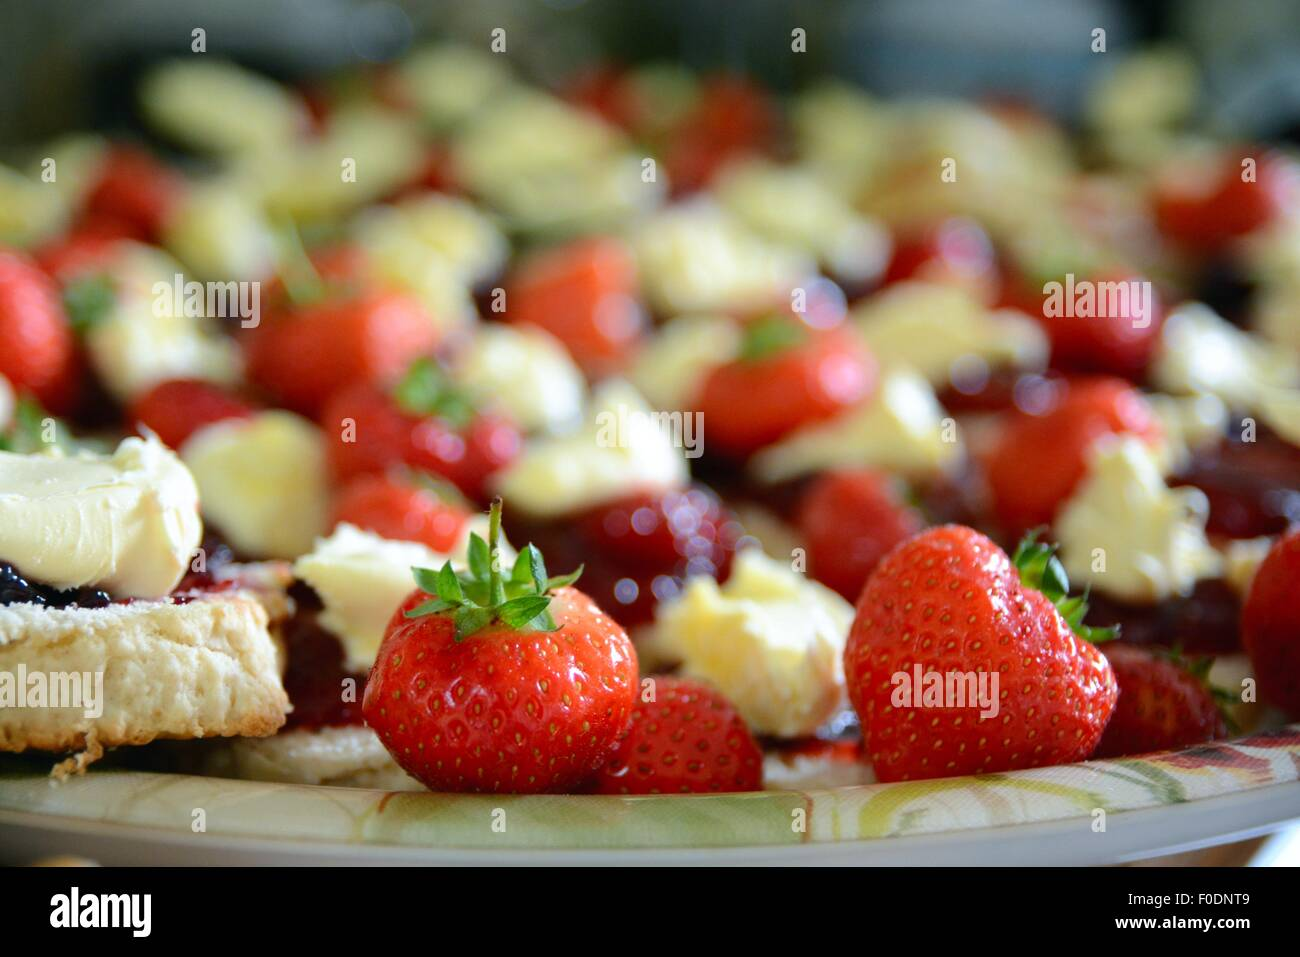 Strawberries and clotted cream. Party food. - Stock Image